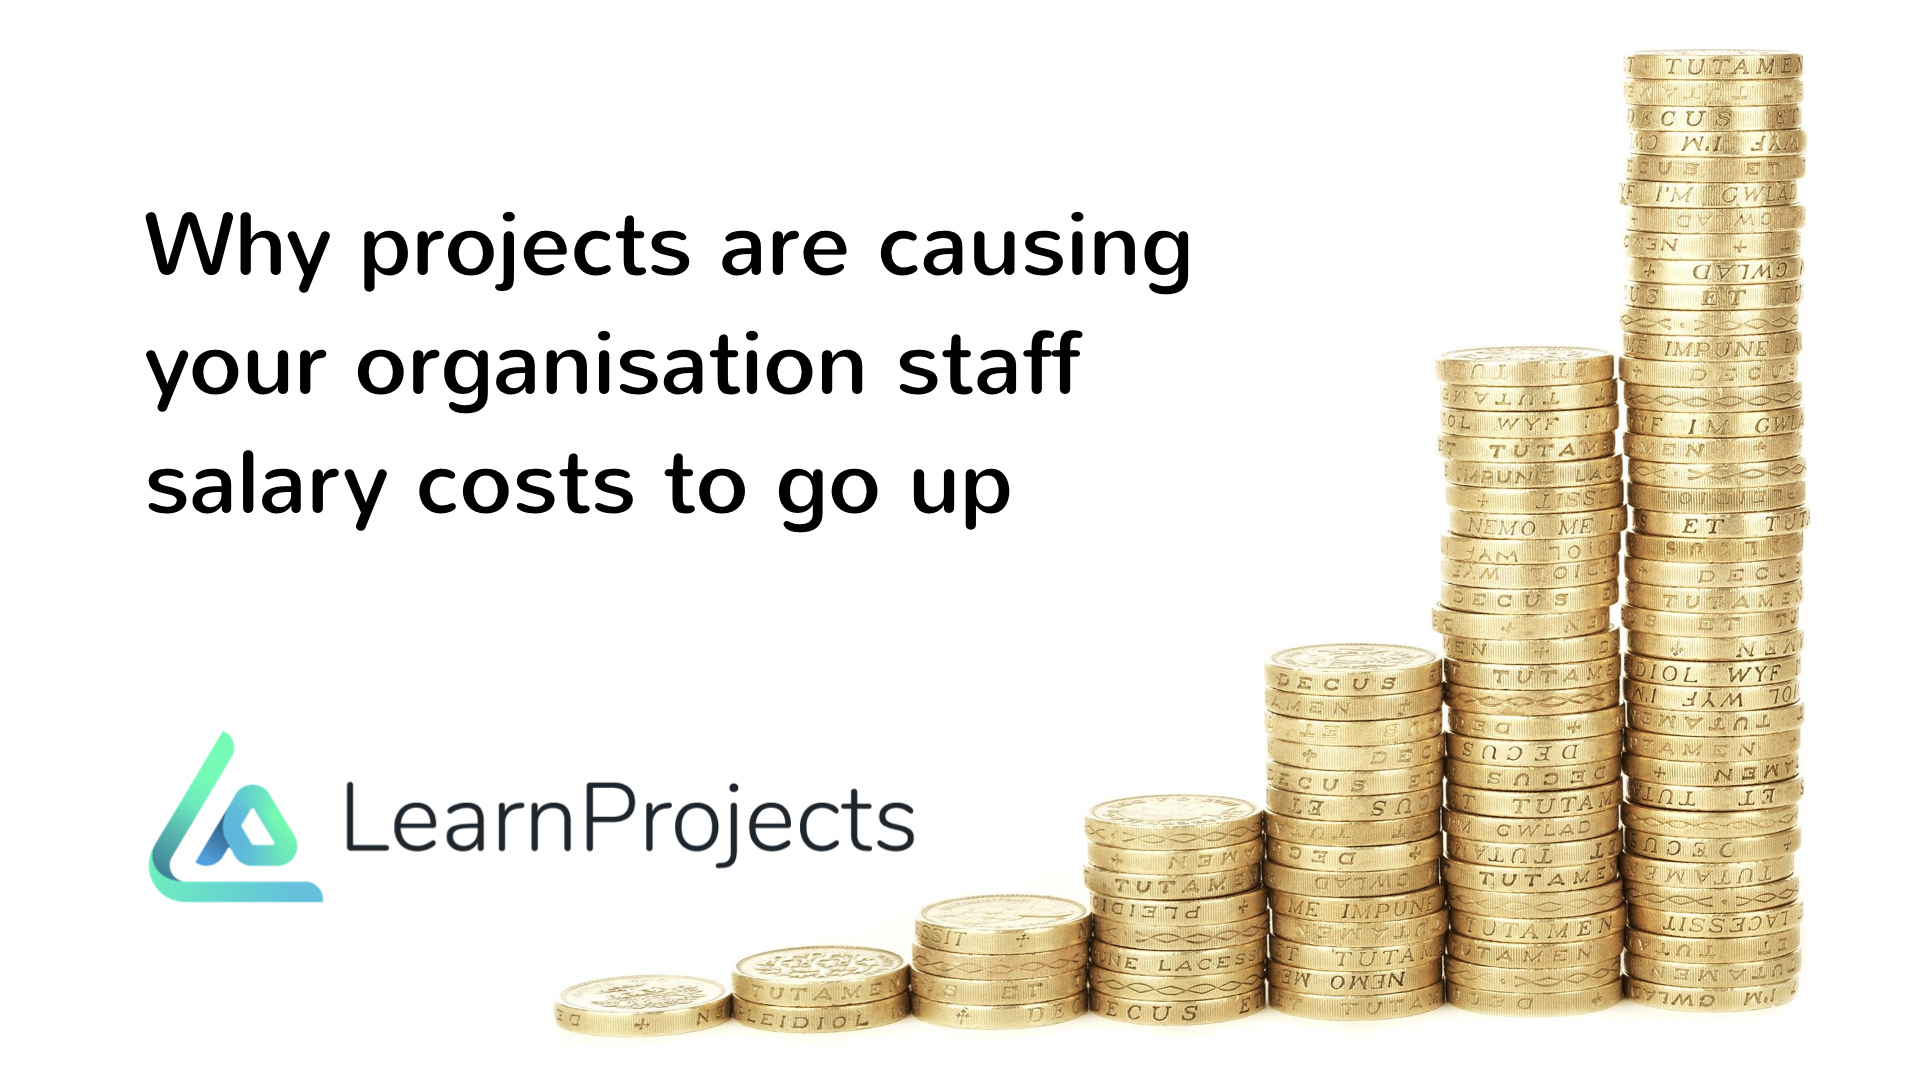 Why projects are causing your organisation staff costs to go up